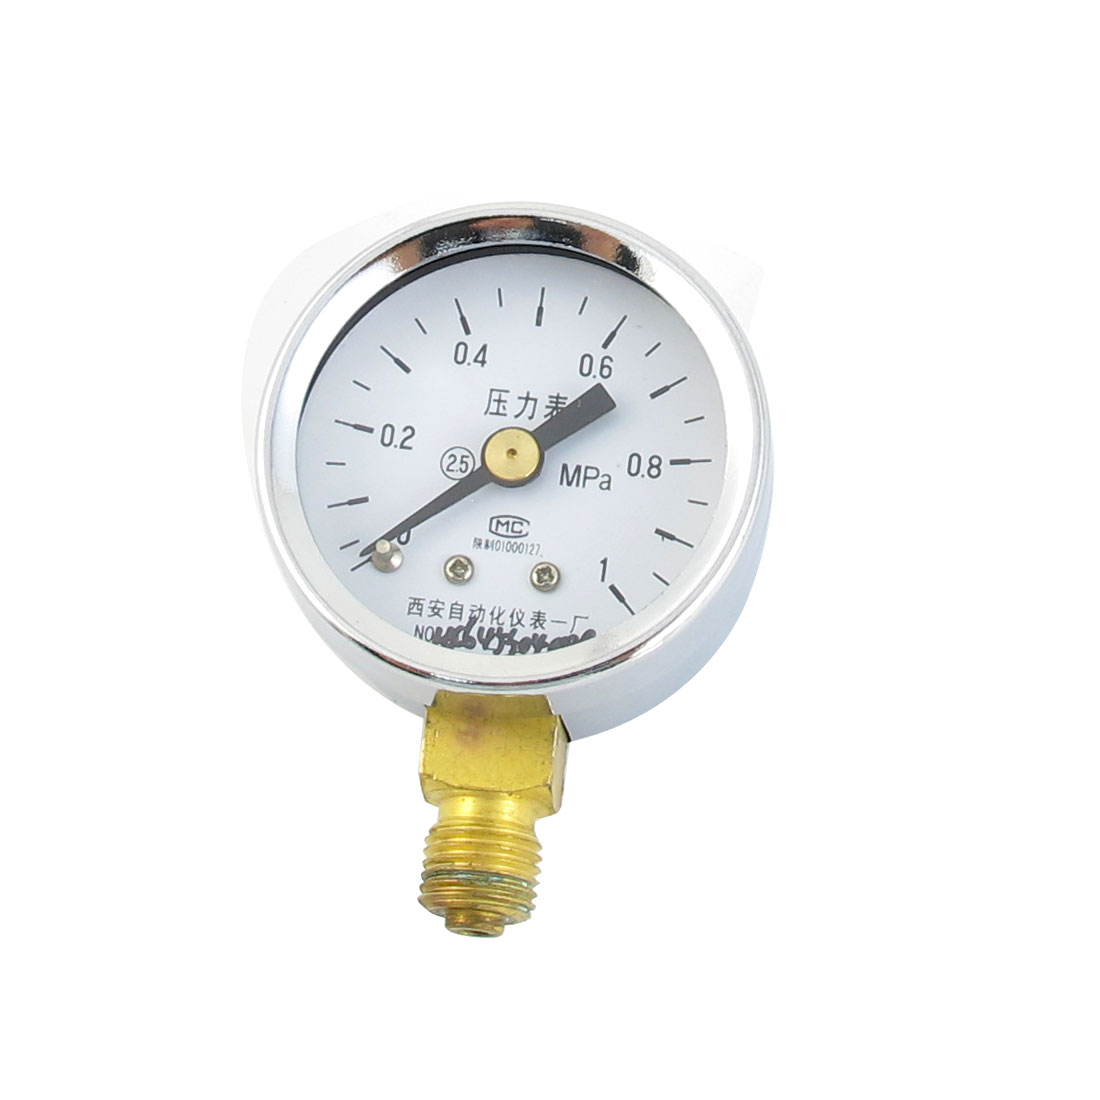 Silver Tone Case 1/8PT Male Threaded 0-1Mpa Pneumatic Air Pressure Gauge